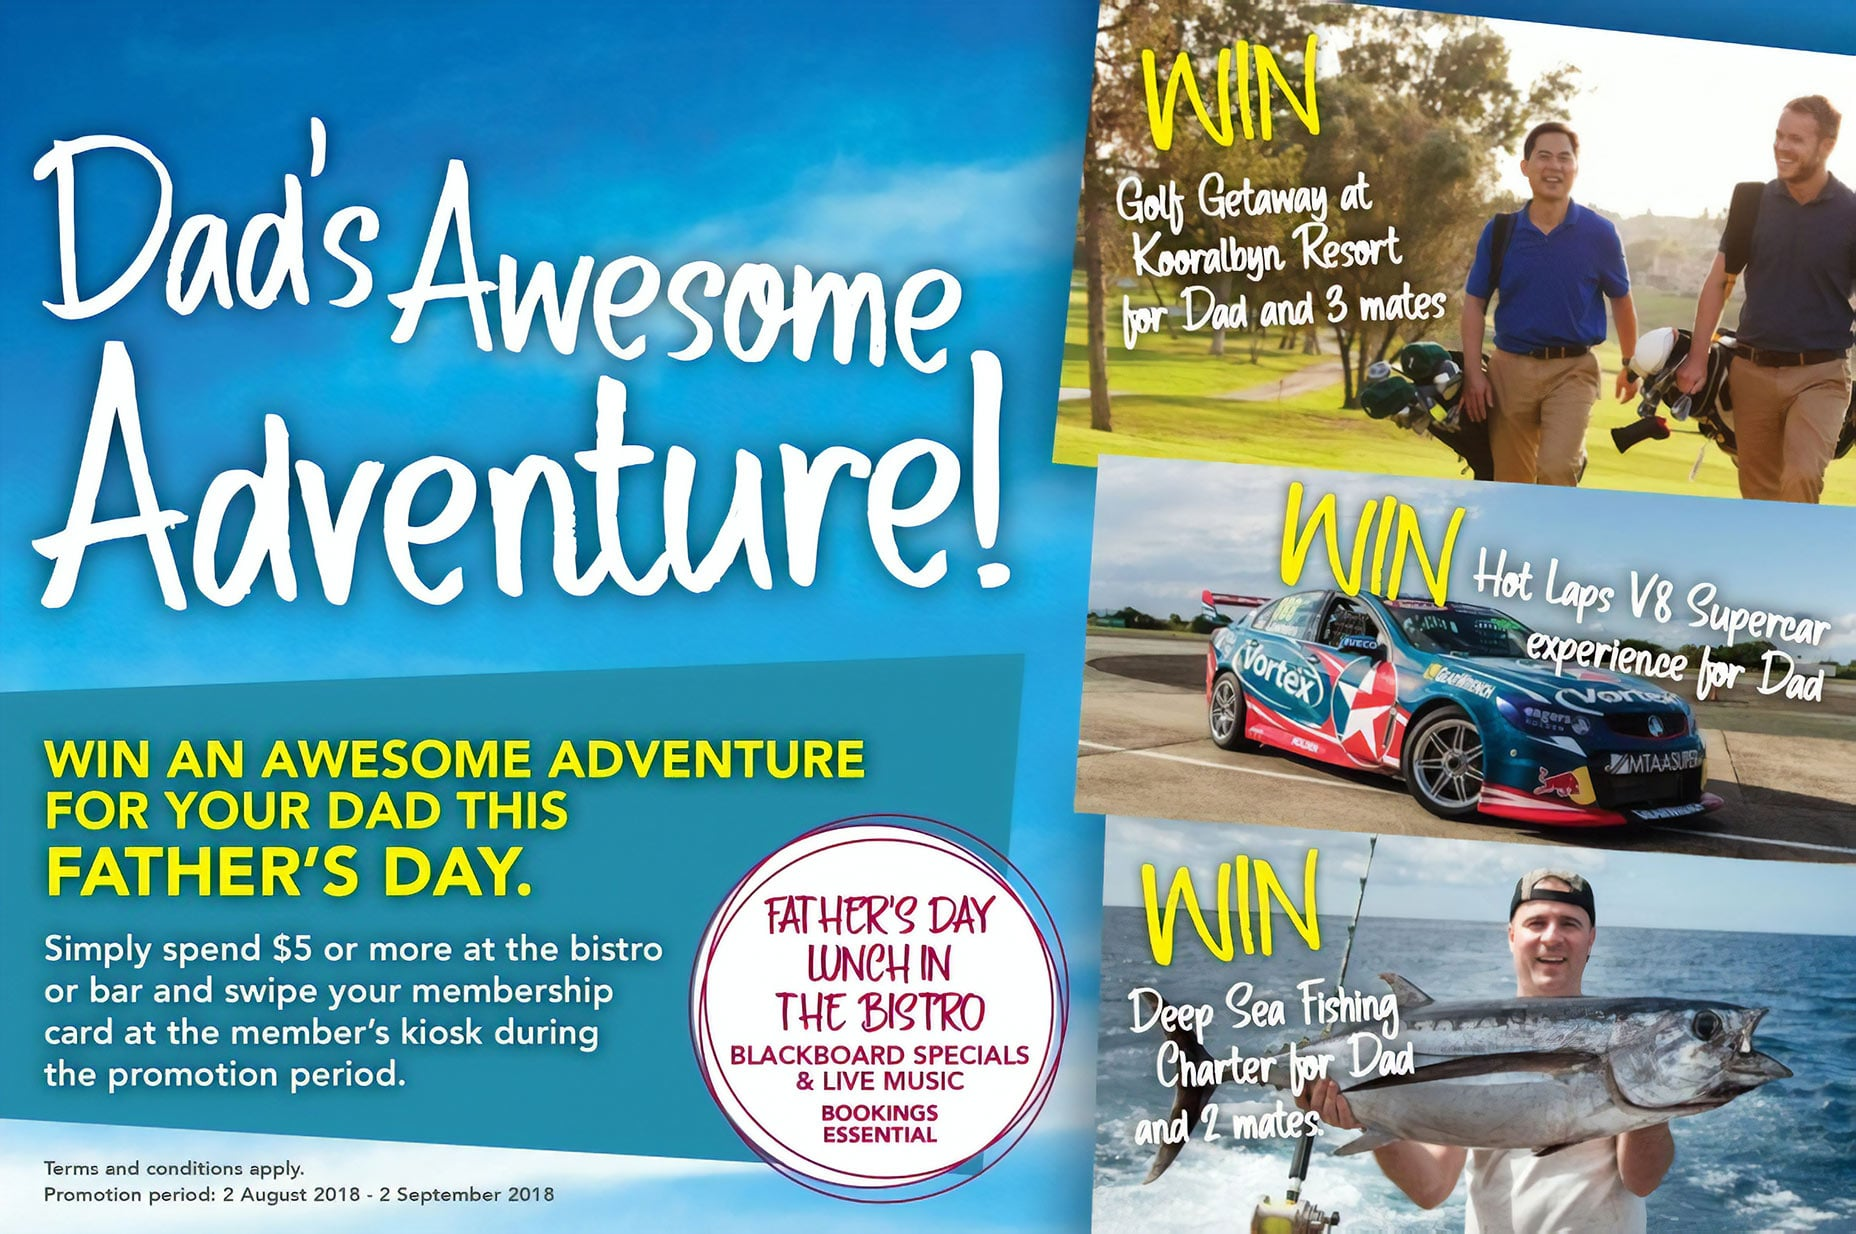 Dad's Awesome Adventure Giveaway